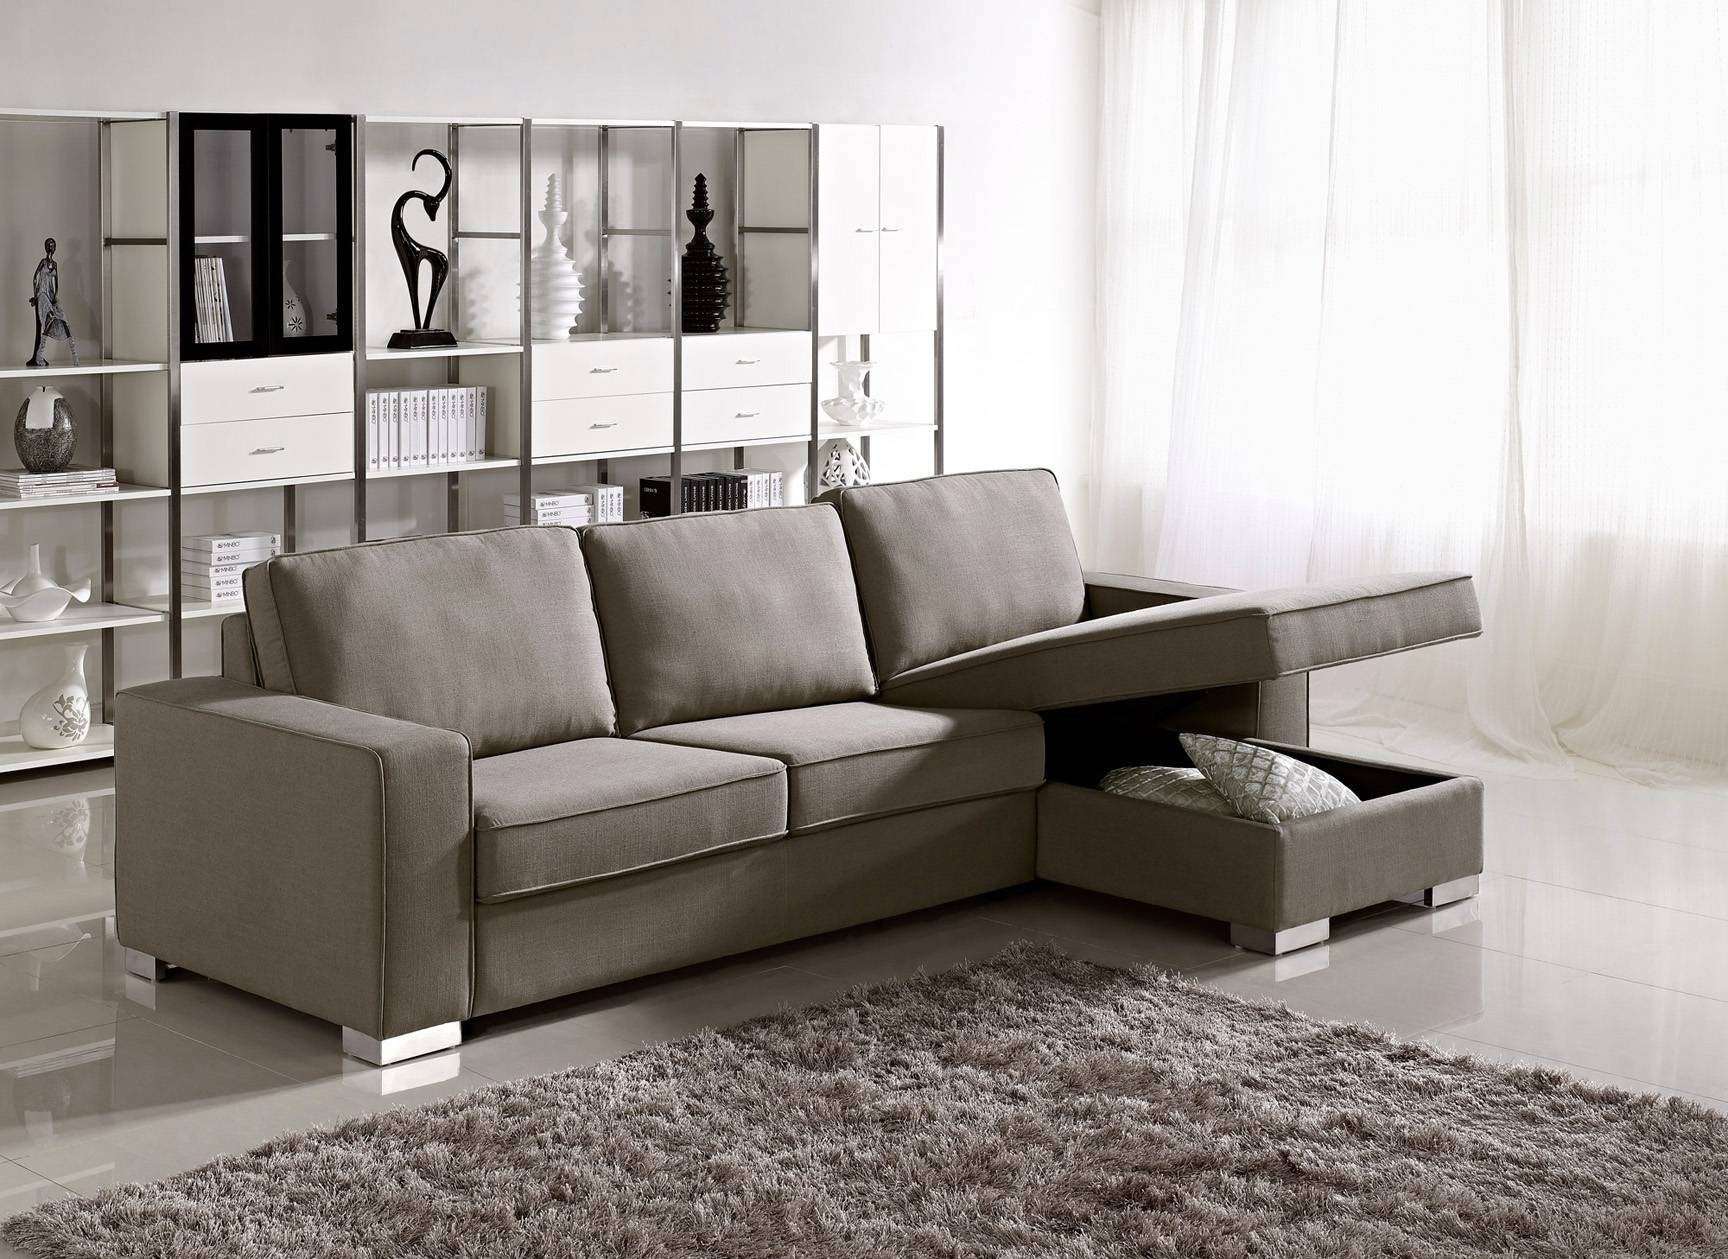 Living Room. Best Couch For Small Living Room: Best-Couch-For regarding Small Lounge Sofas (Image 8 of 15)